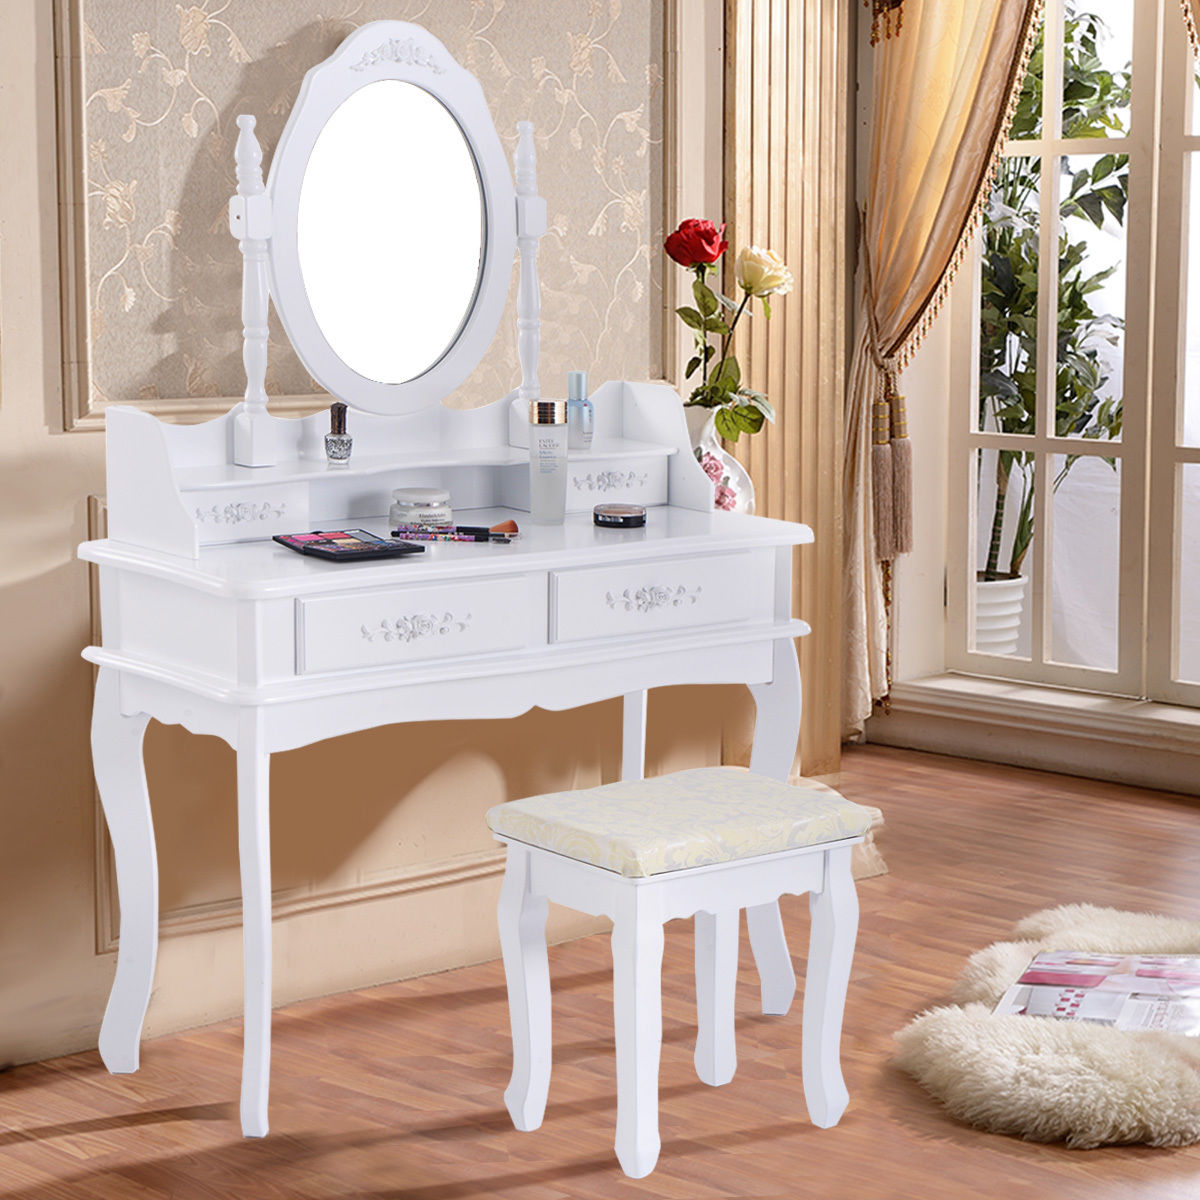 Giantex White Vanity Table Jewelry Makeup Dressing Table Set with Stool and 4 Drawerd Modern Mirror Wood Desk HW58803 ...